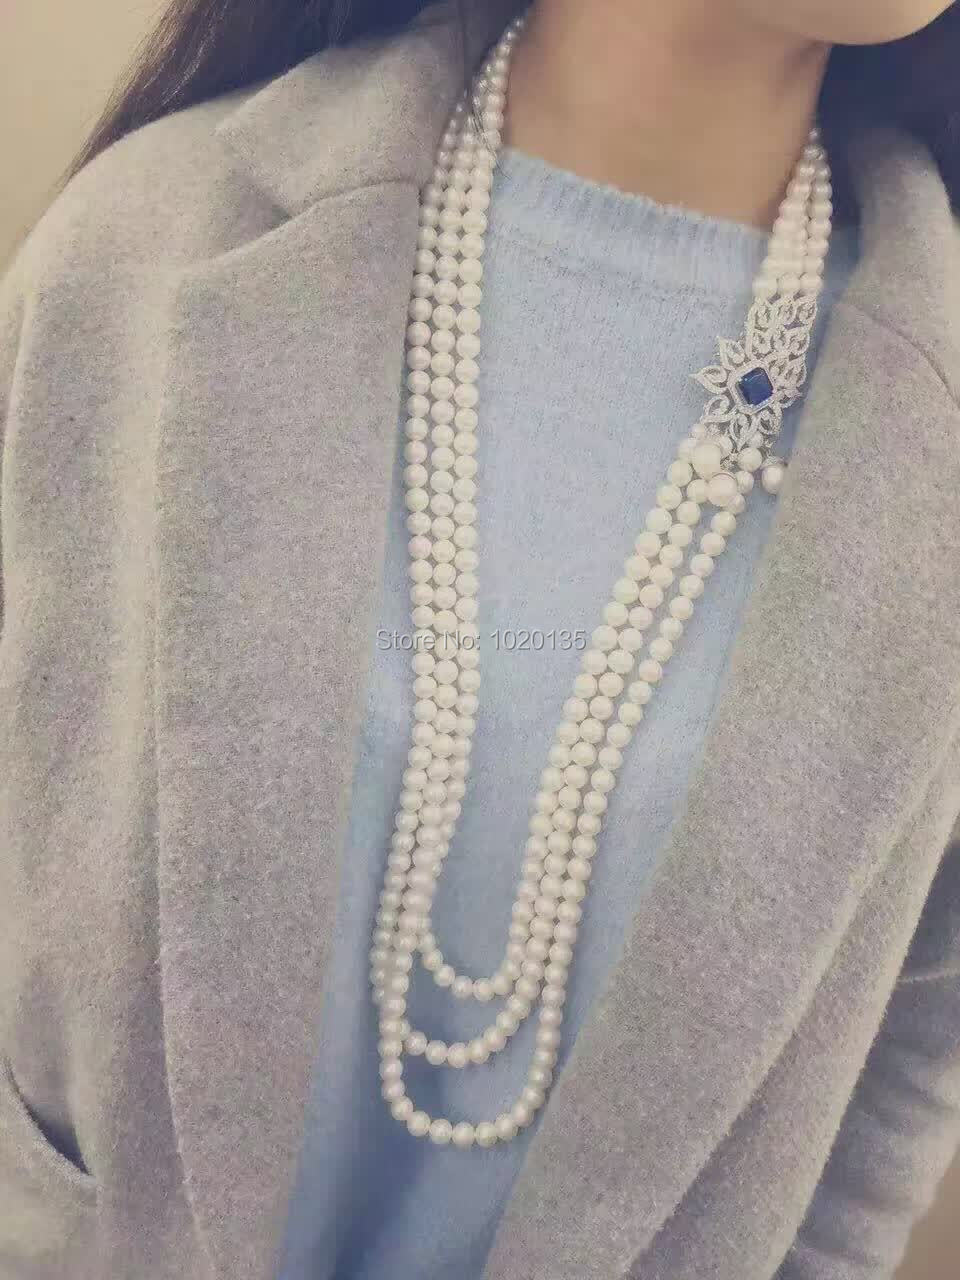 3rows freshwater pearl 7-8mm near round necklace 38-45inch  wholesale nature beads  FPPJ3rows freshwater pearl 7-8mm near round necklace 38-45inch  wholesale nature beads  FPPJ